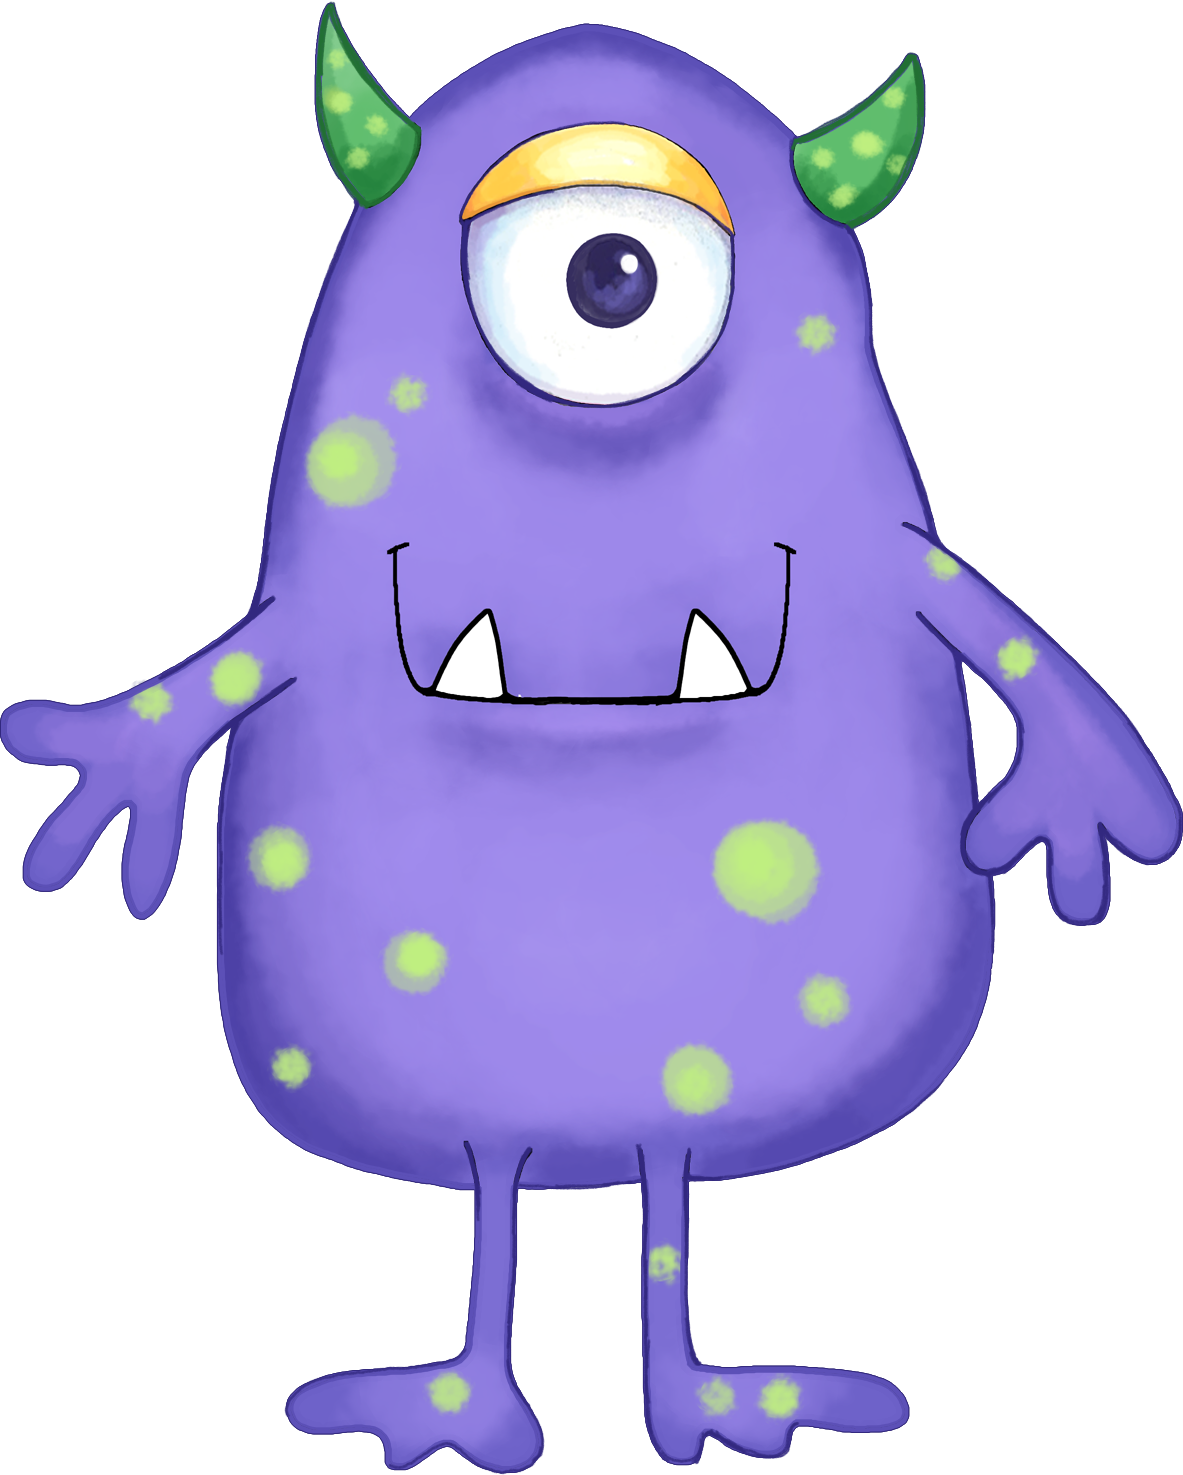 Cute Monster Clipart Free Download Best Cute Monster Clipart On